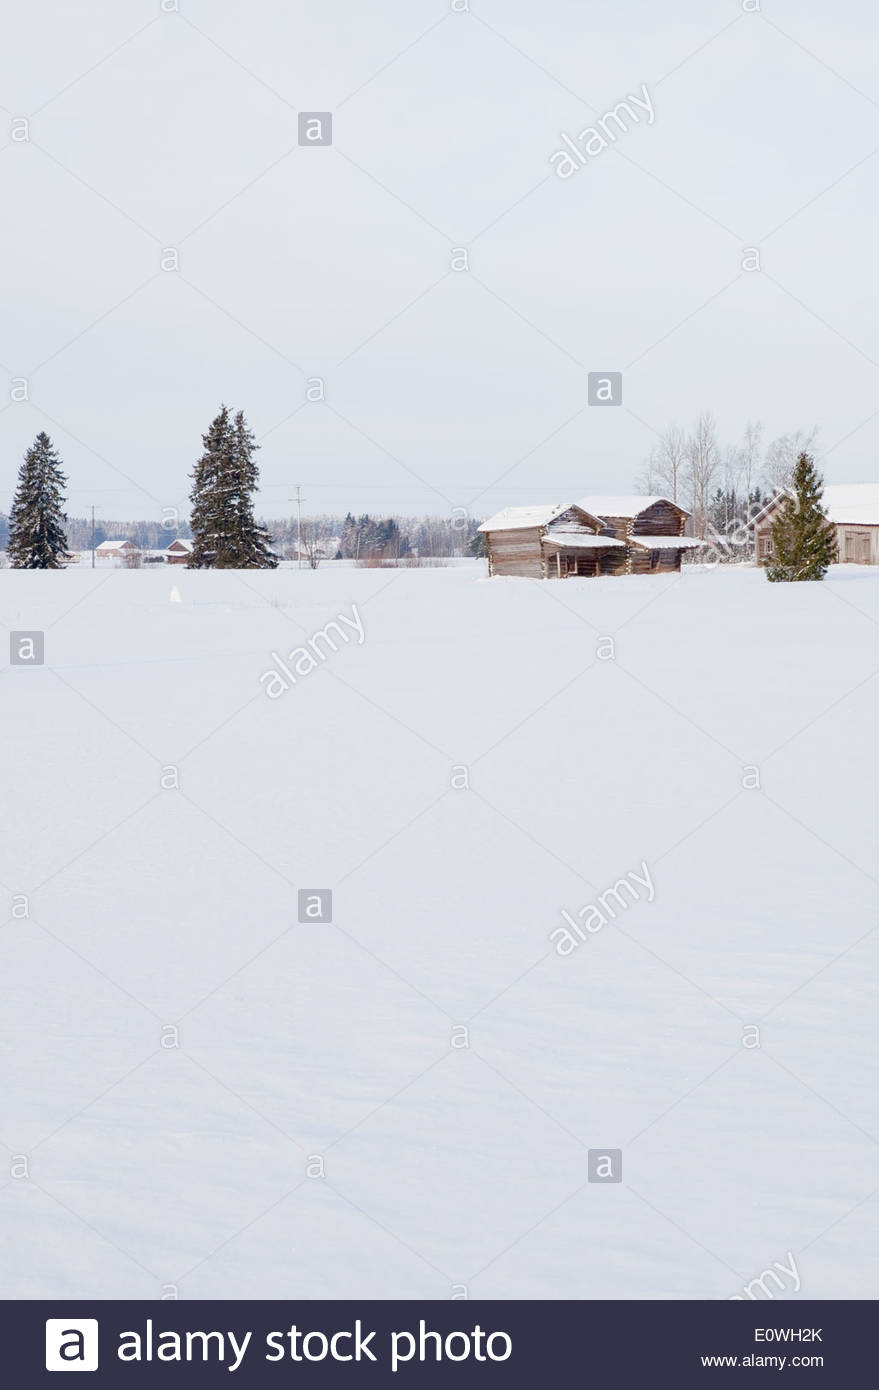 Finnish countryside in winter - Stock Image